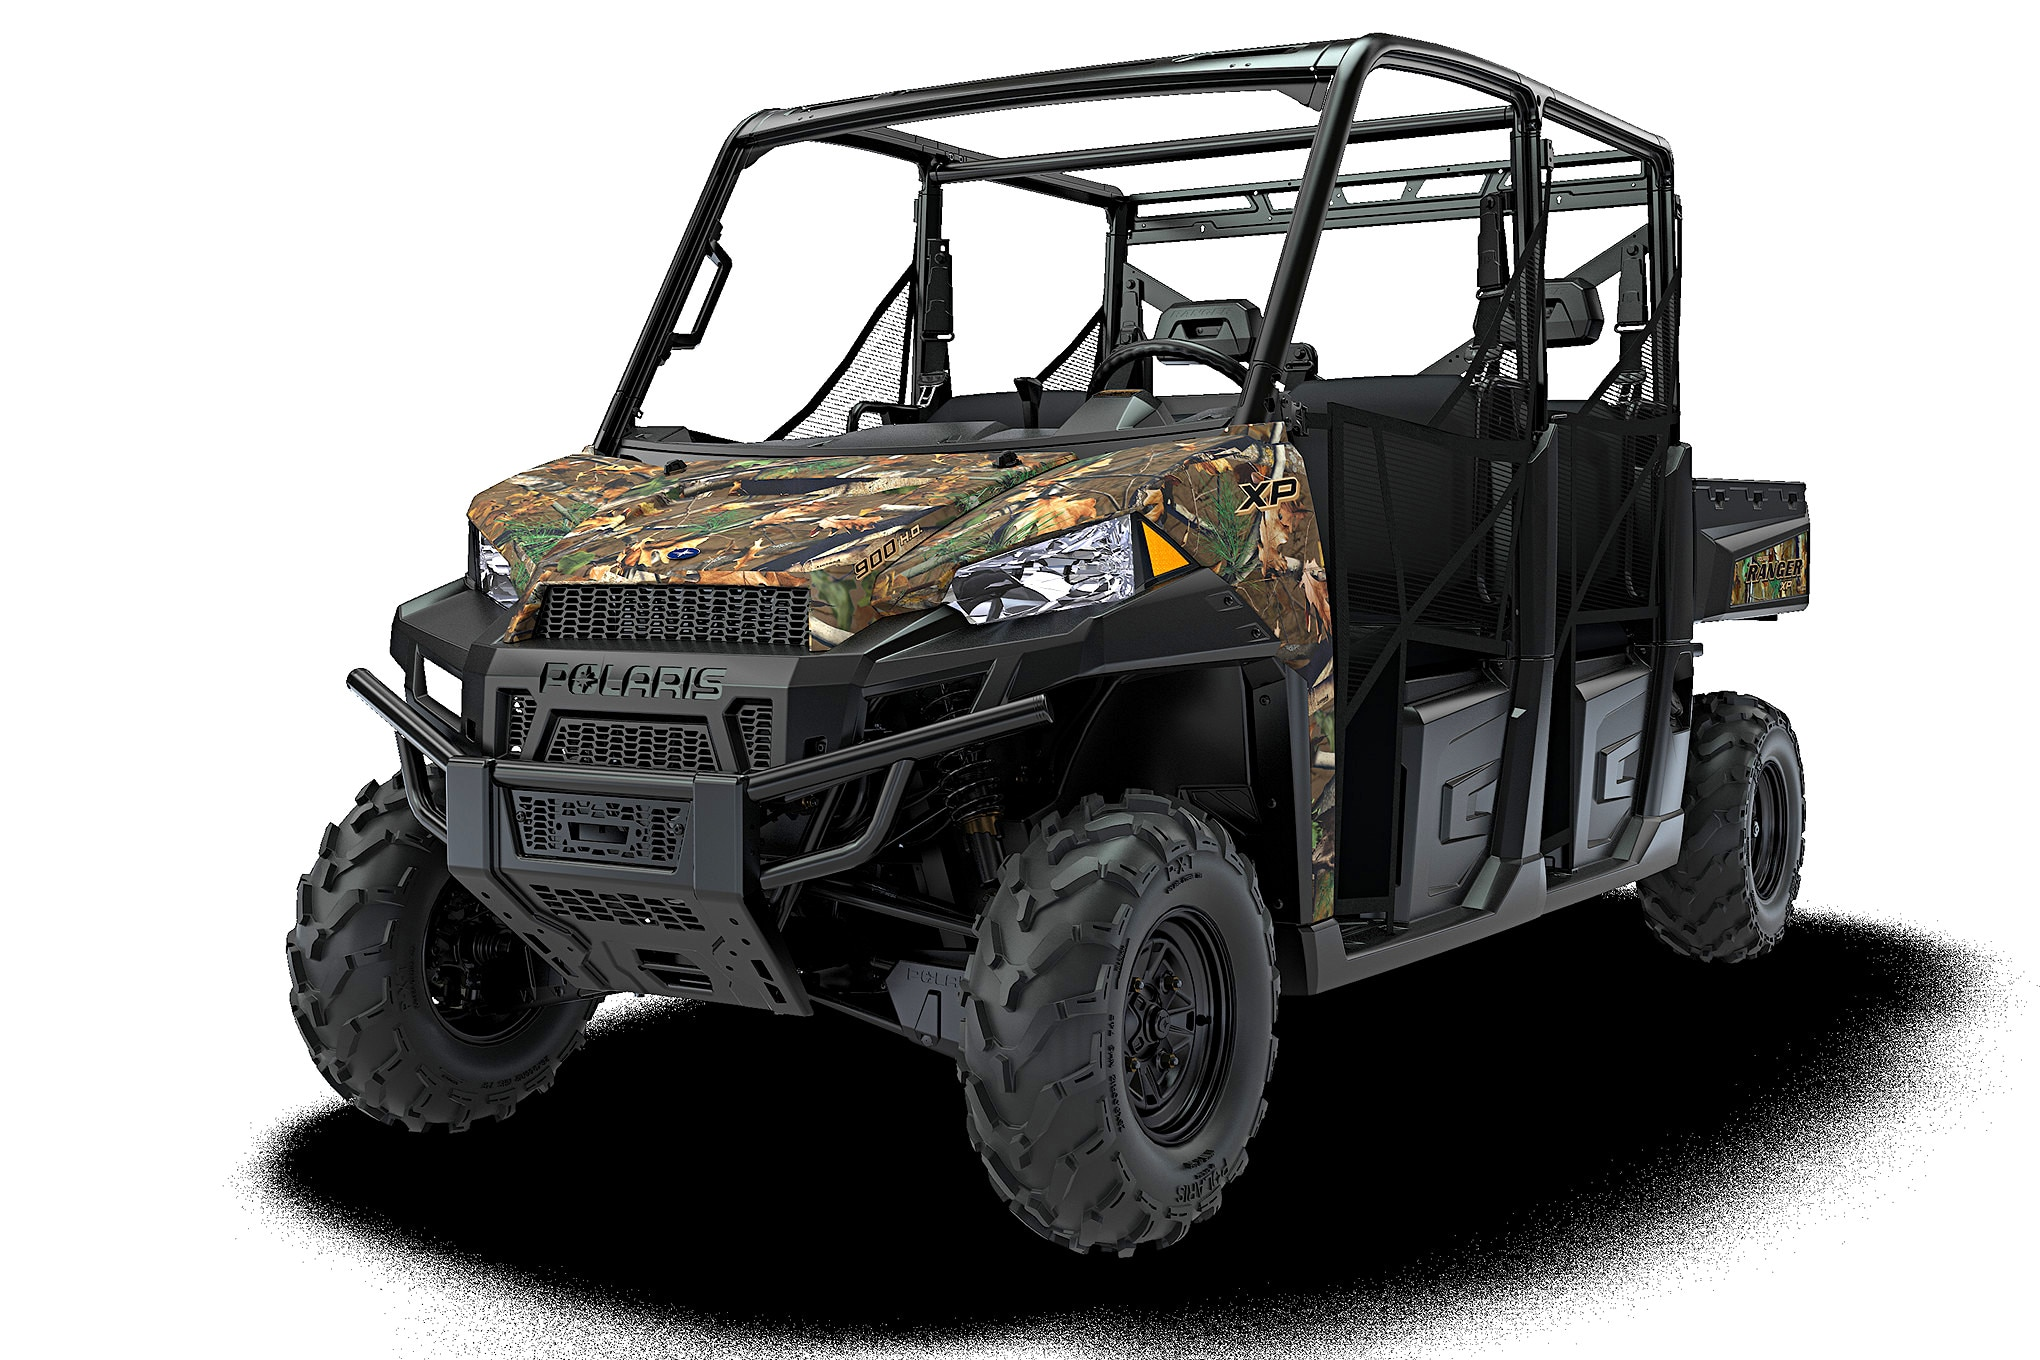 044 utv guide polaris ranger crew xp 900 front three quarter